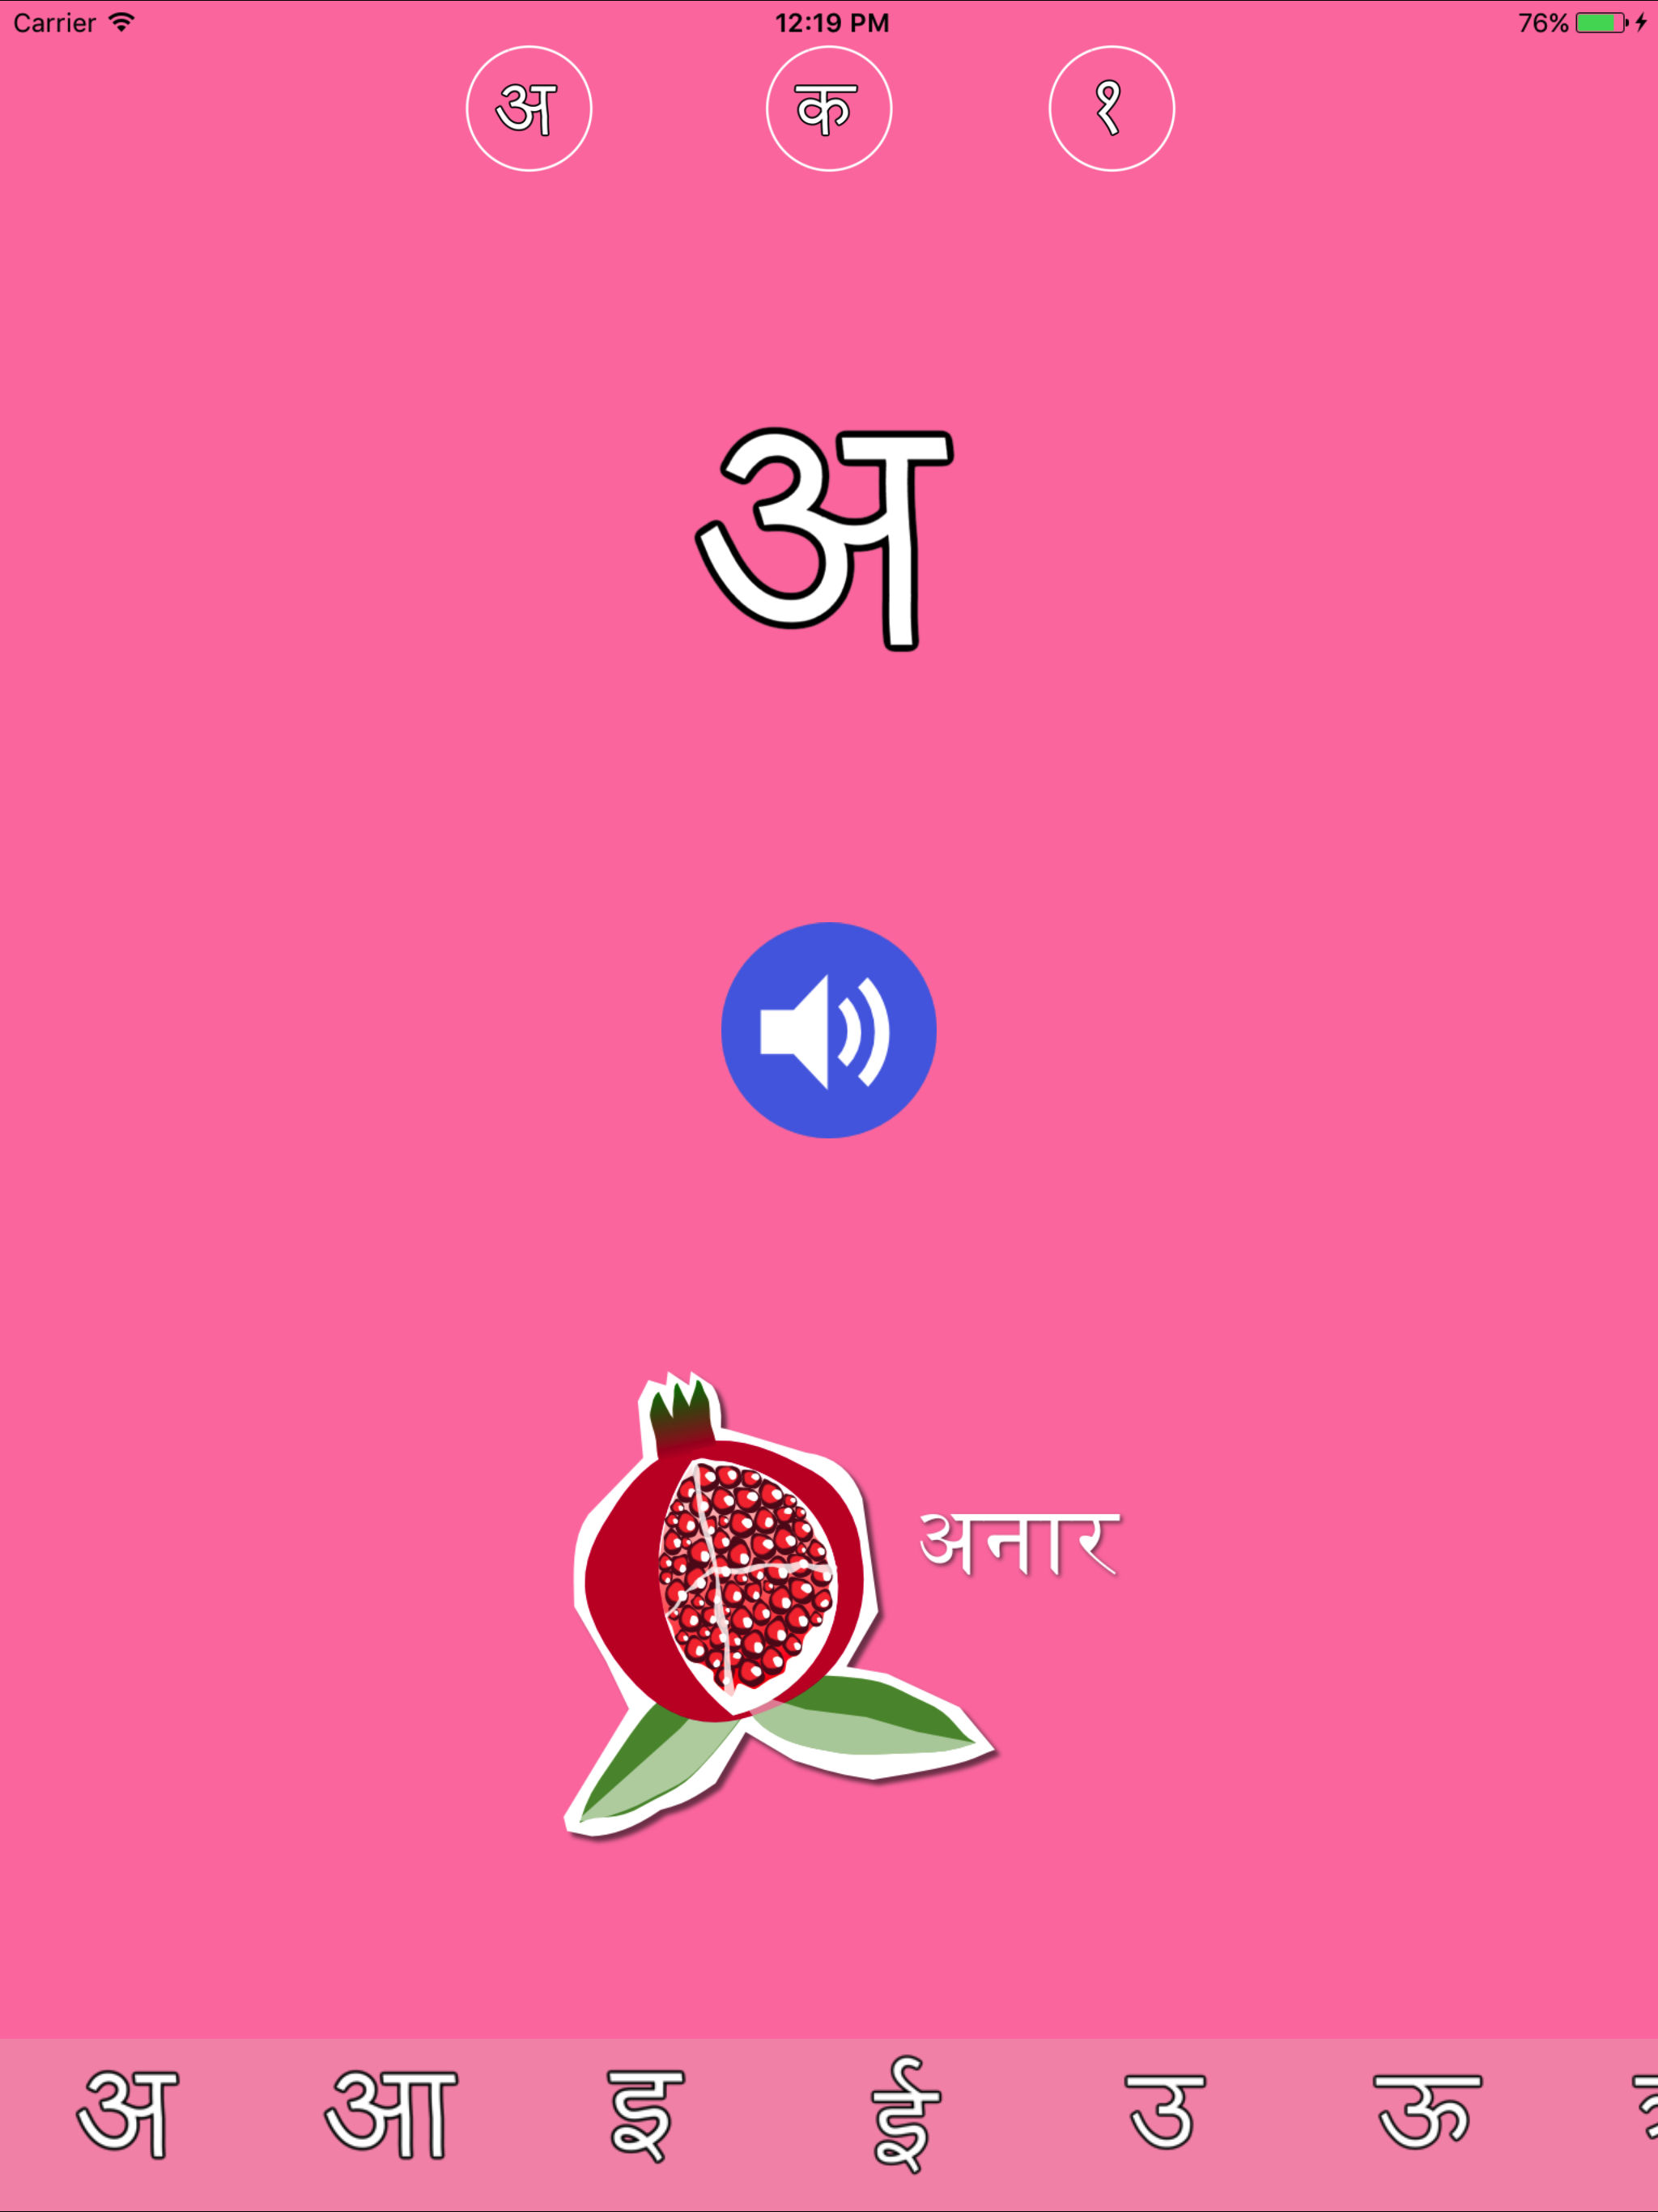 Hindi Bundle 1 App Ranking and Store Data | App Annie